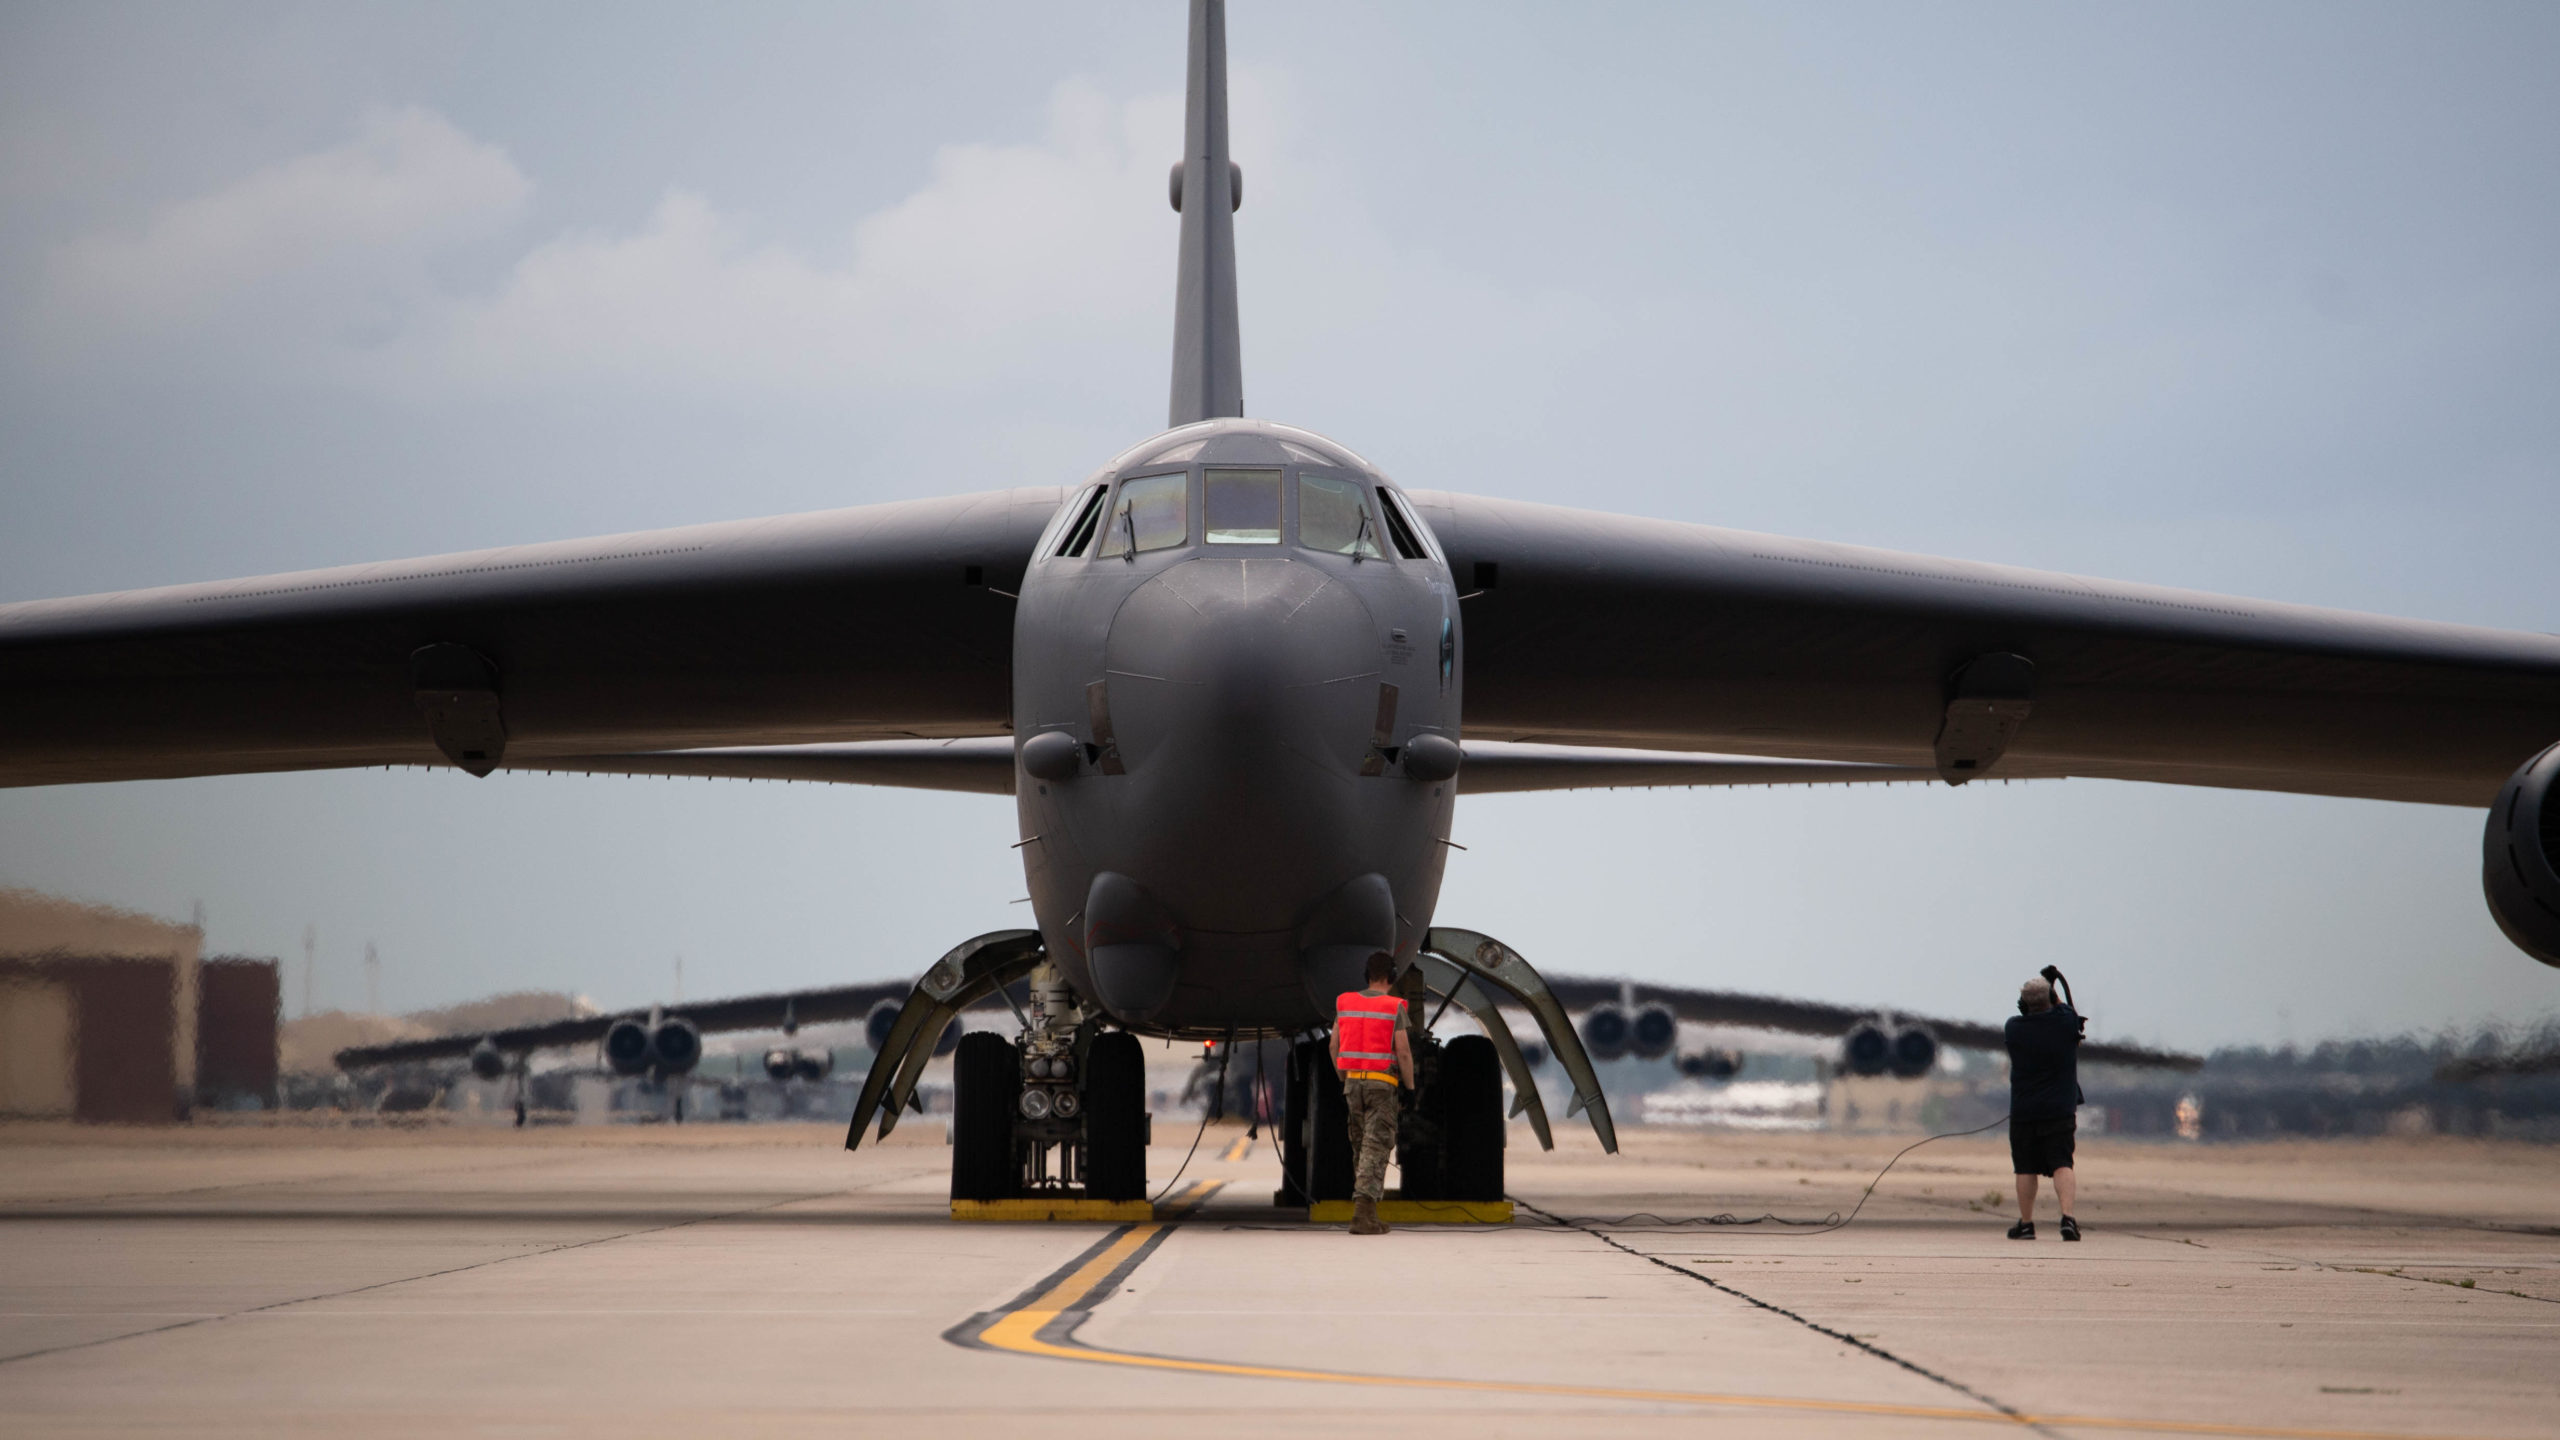 B-52s Simultaneously Operate in Europe, Middle East, and Indo-Pacific Theaters - Air Force Magazine